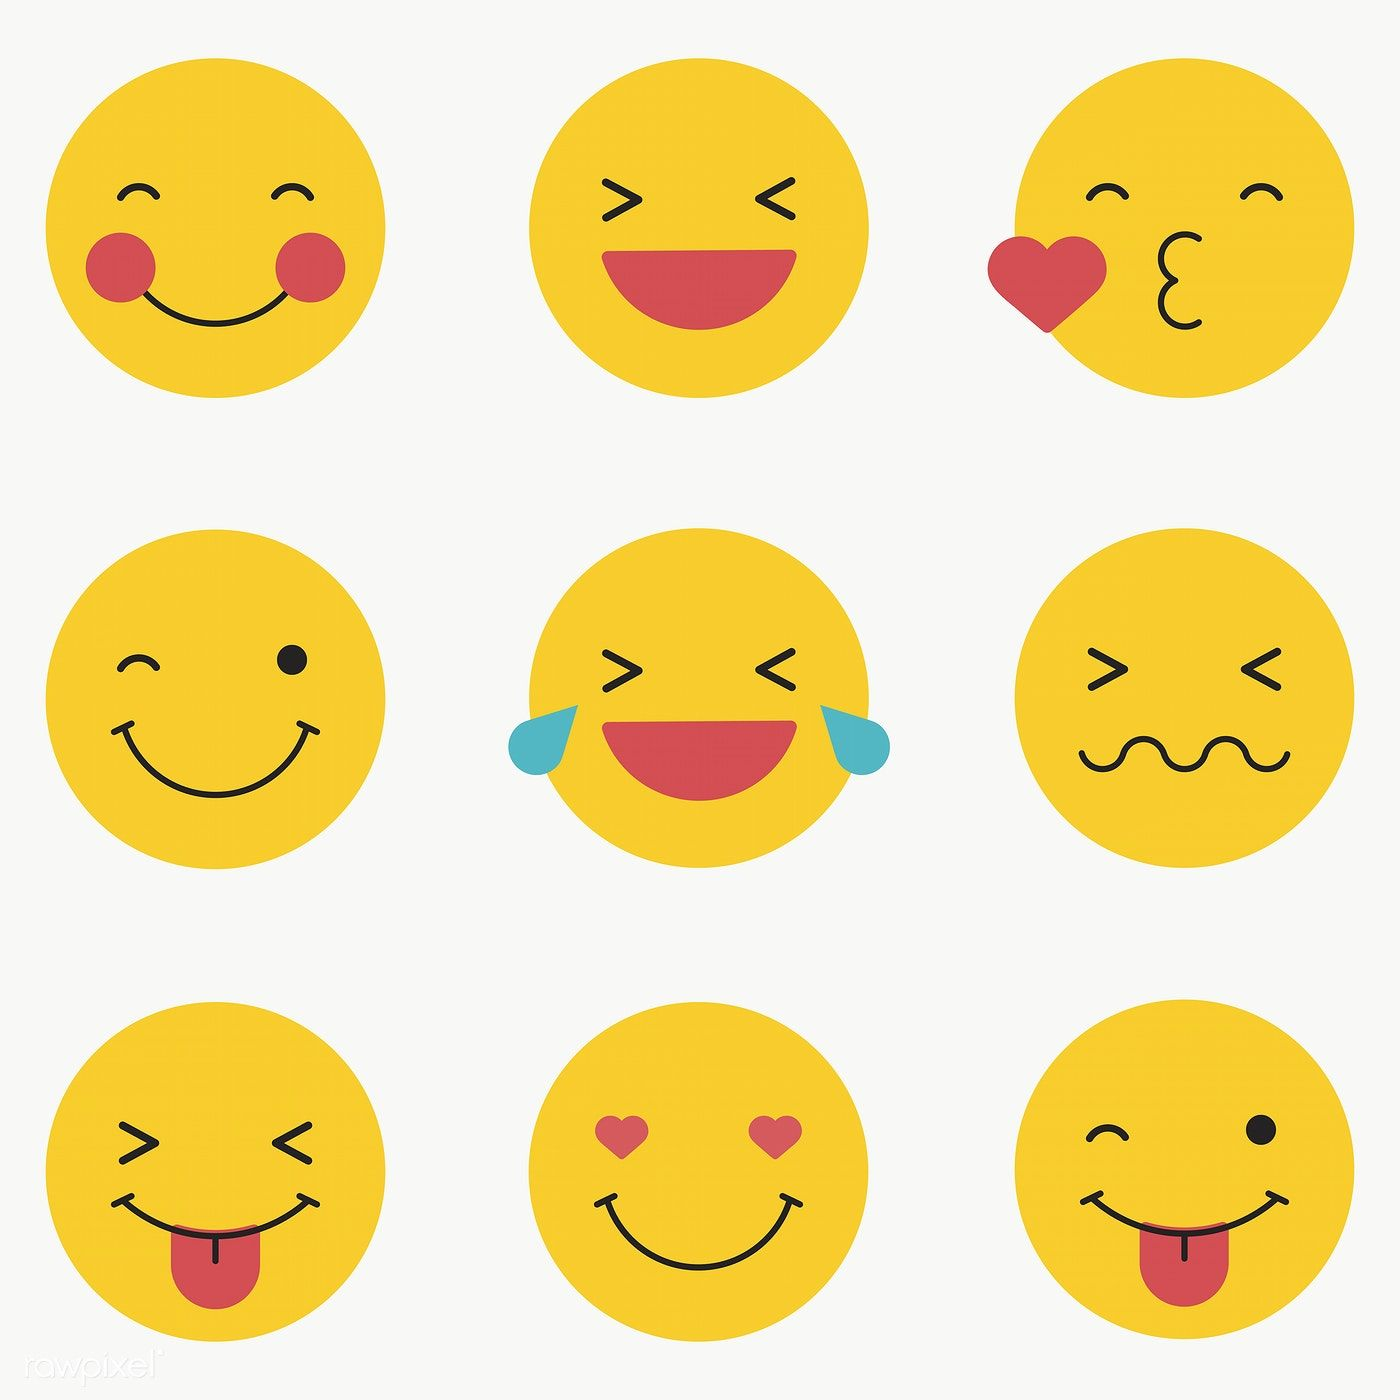 Download Premium Png Of Round Yellow Emoticon Set Emoticon Set Isolated On Emoticon Vector Background Pattern Emoji Drawings